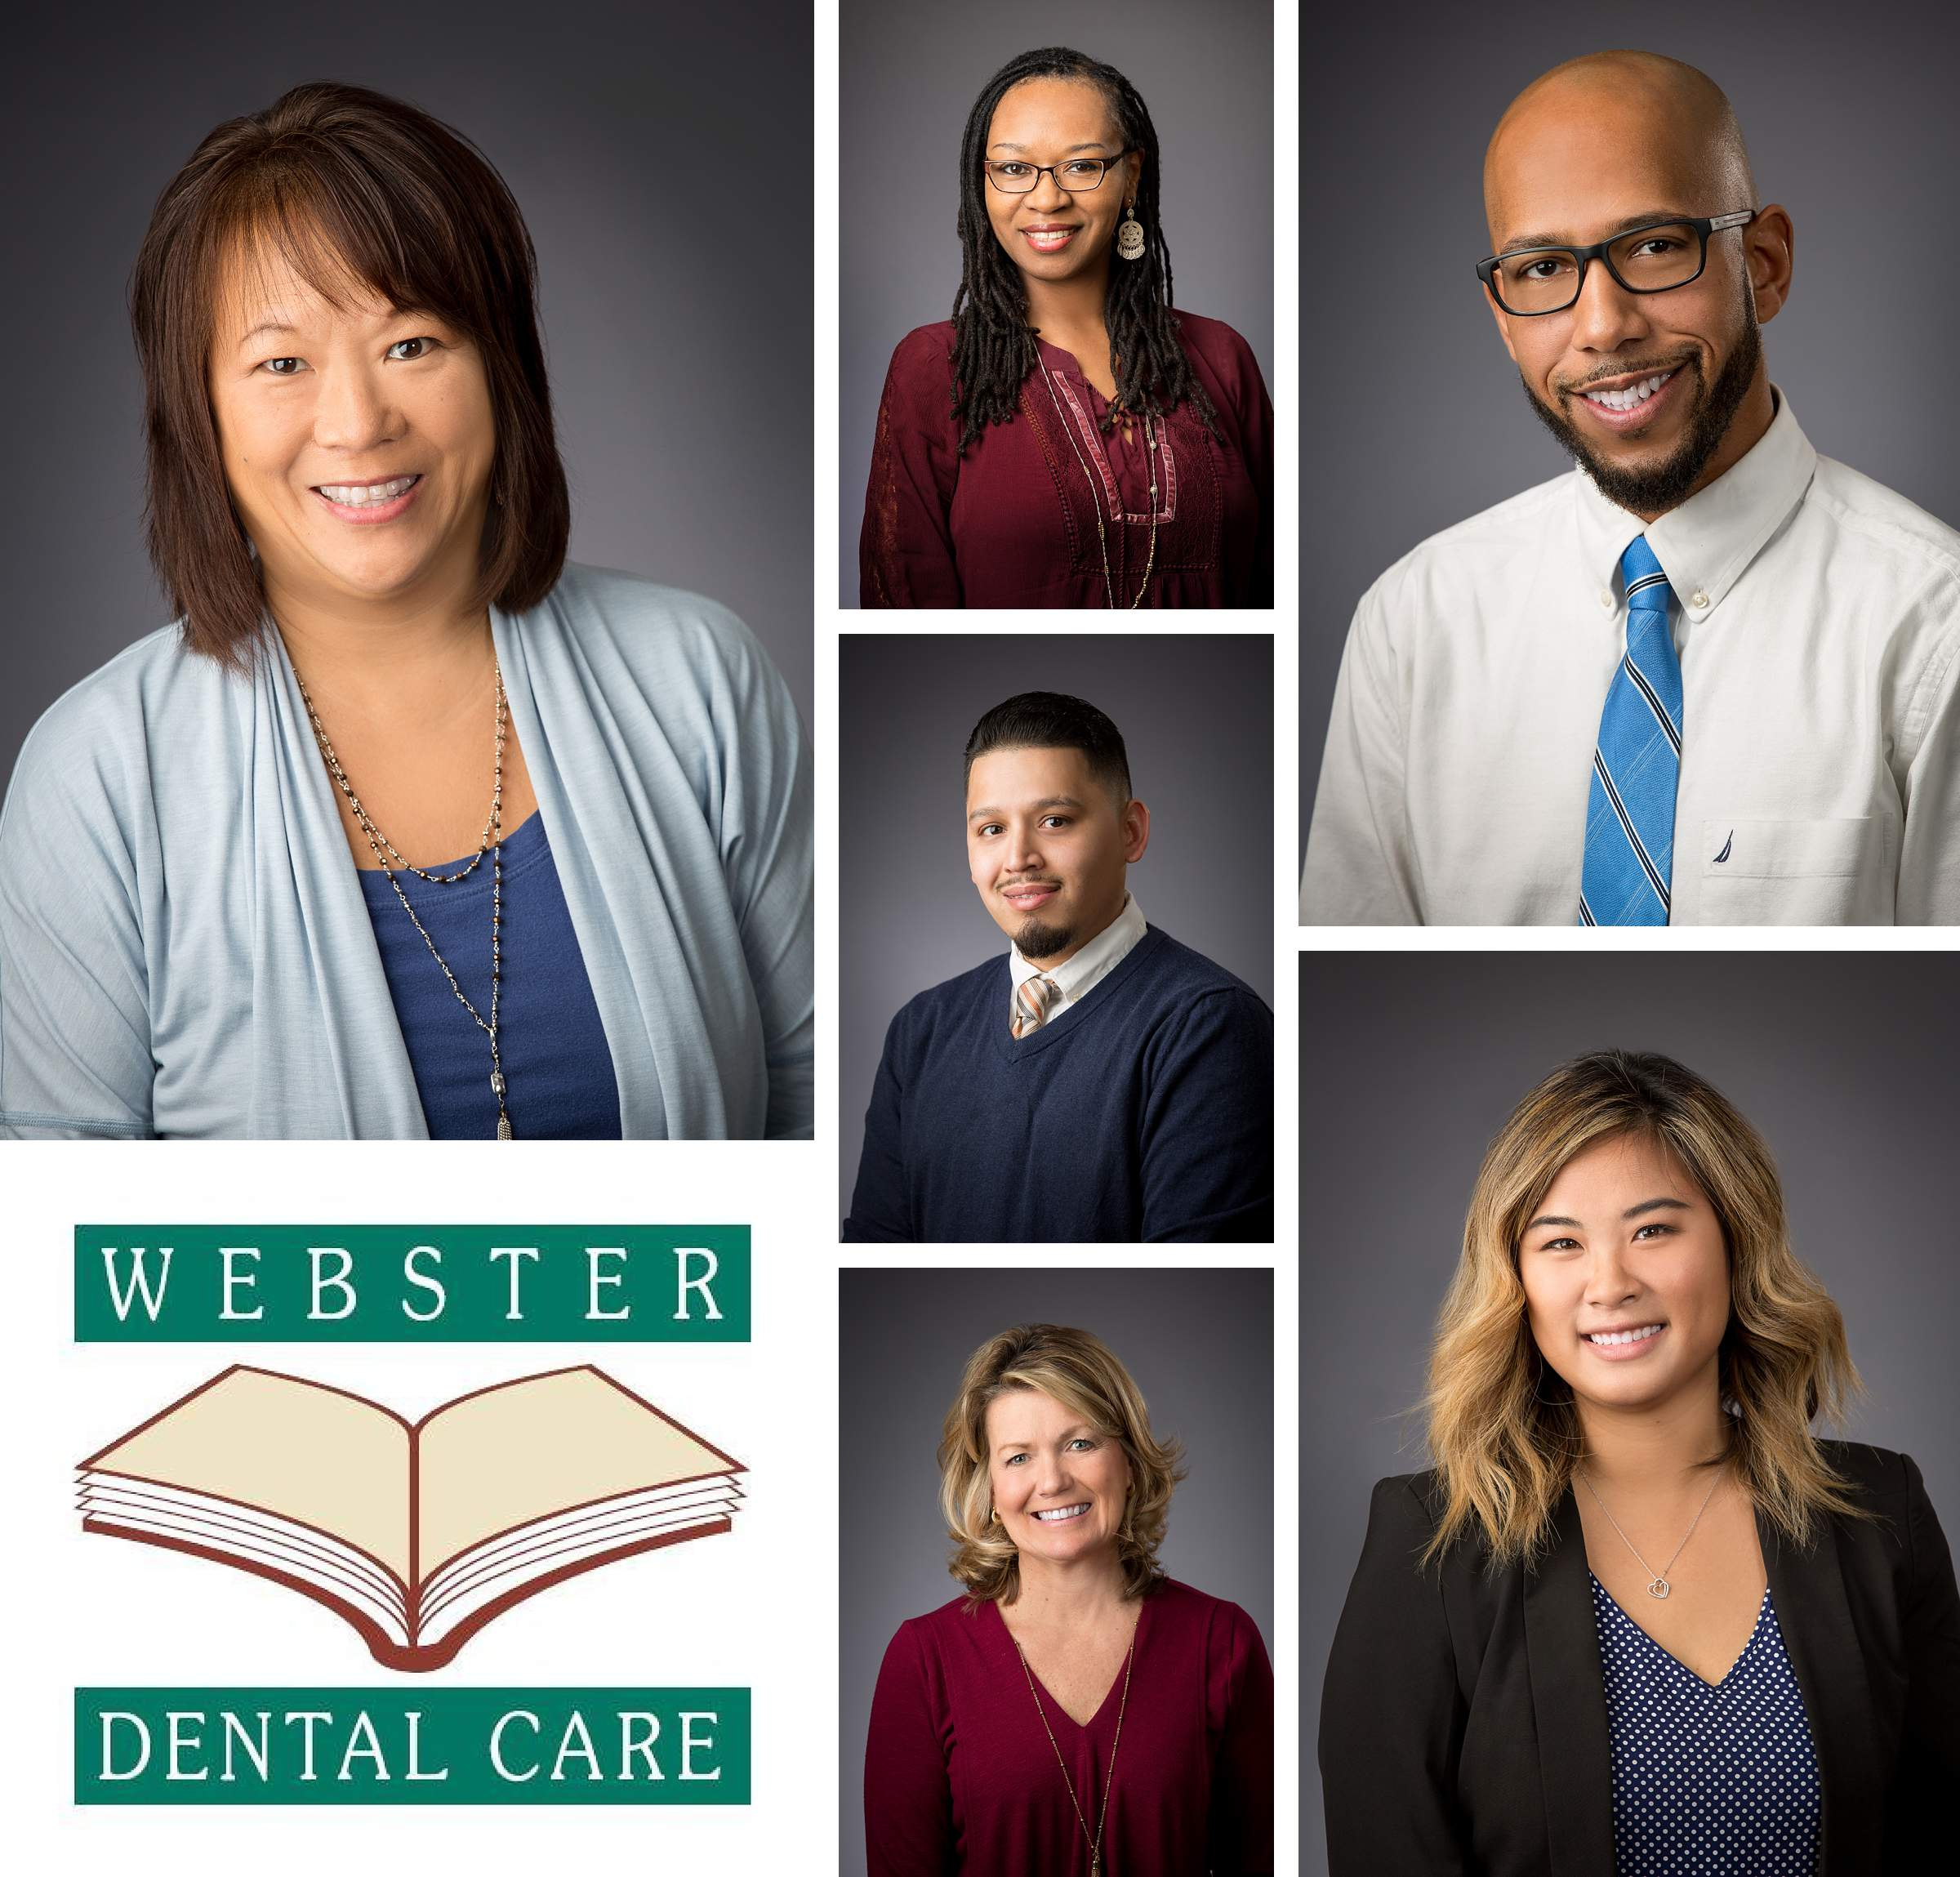 Webster Dental Care Office Manager Staff Headshots And